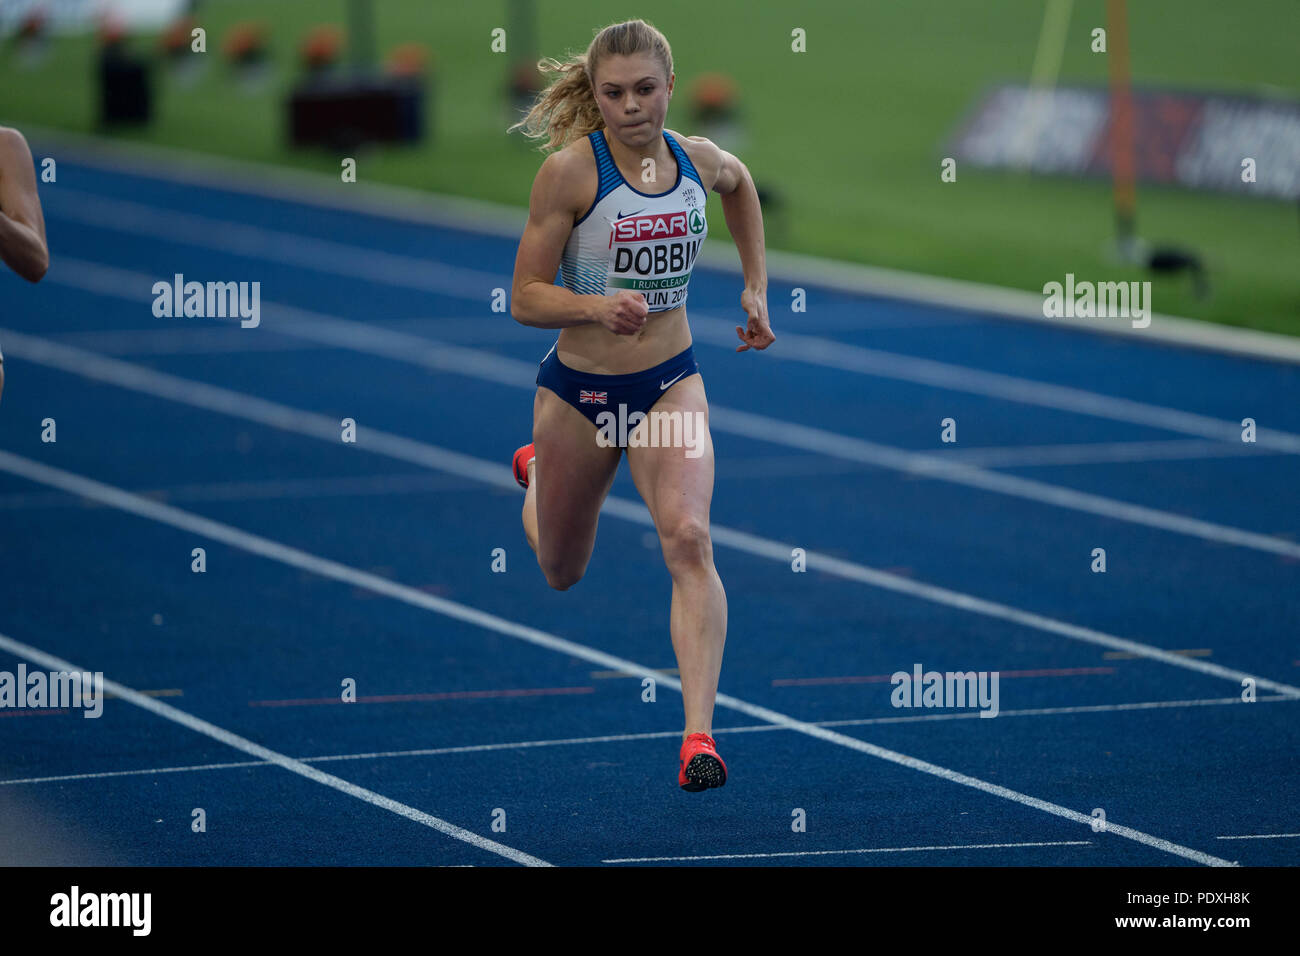 Berlin, Germany, 10 Aug 2018. Beth DOBBIN (Great Britain) competes during the Women's 200m at the European Athletics Championships in Berlin, Germany. Dobbin progressed as a qualifier to the final.Credit: Ben Booth Photography Credit: Ben Booth/Alamy Live News - Stock Image